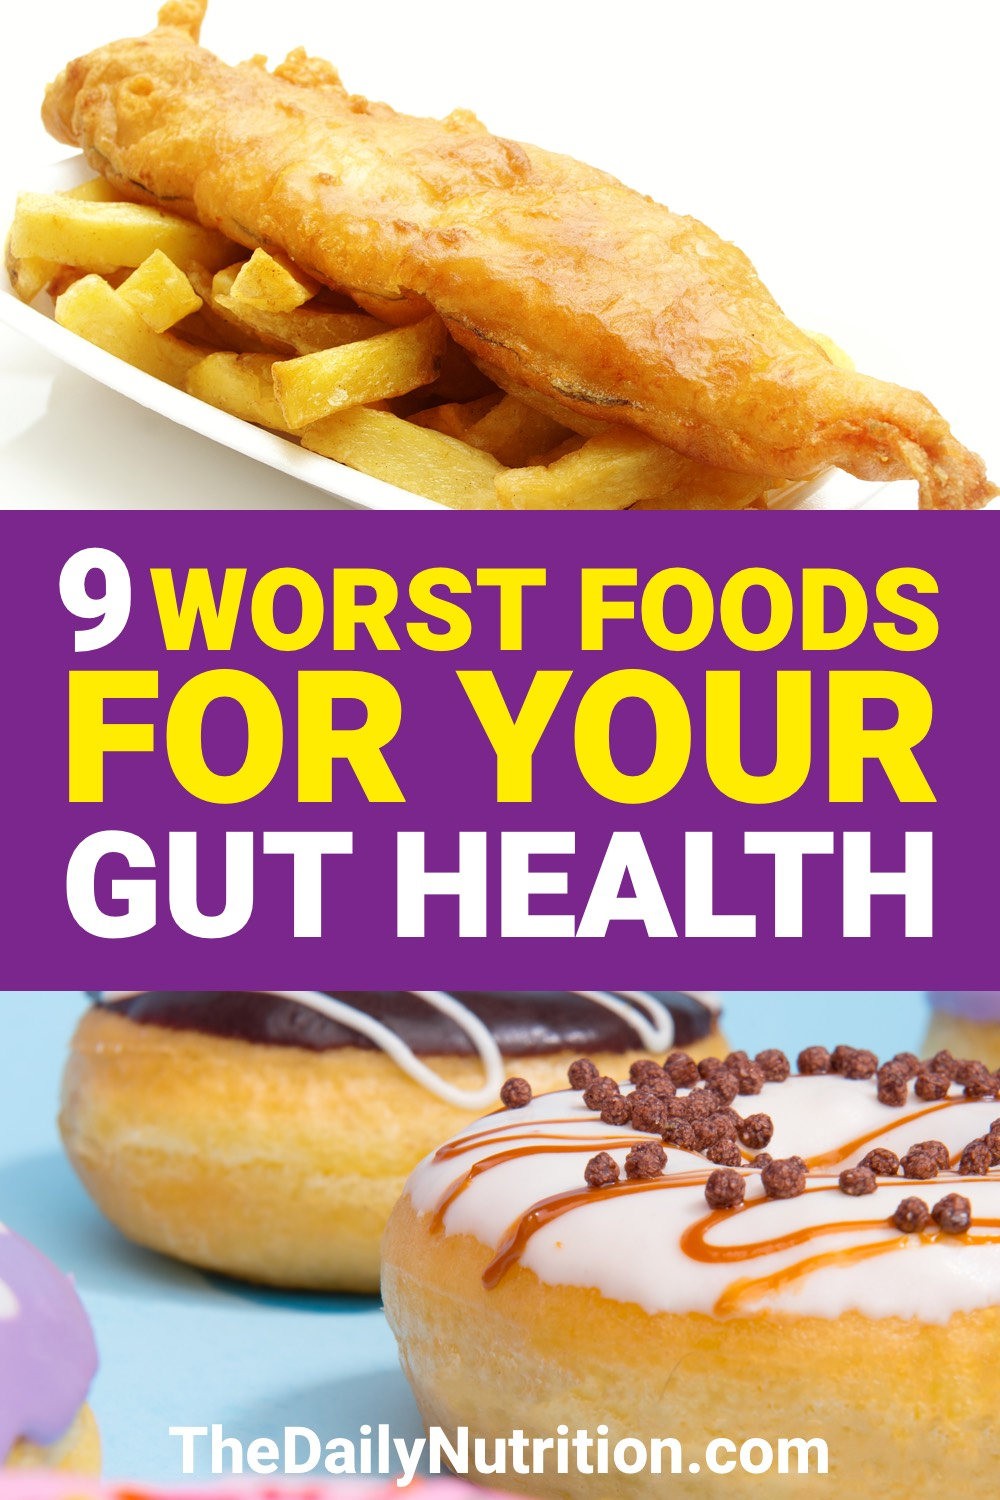 Food can either improve your gut health or make it worse. Here are foods to avoid for gut health.